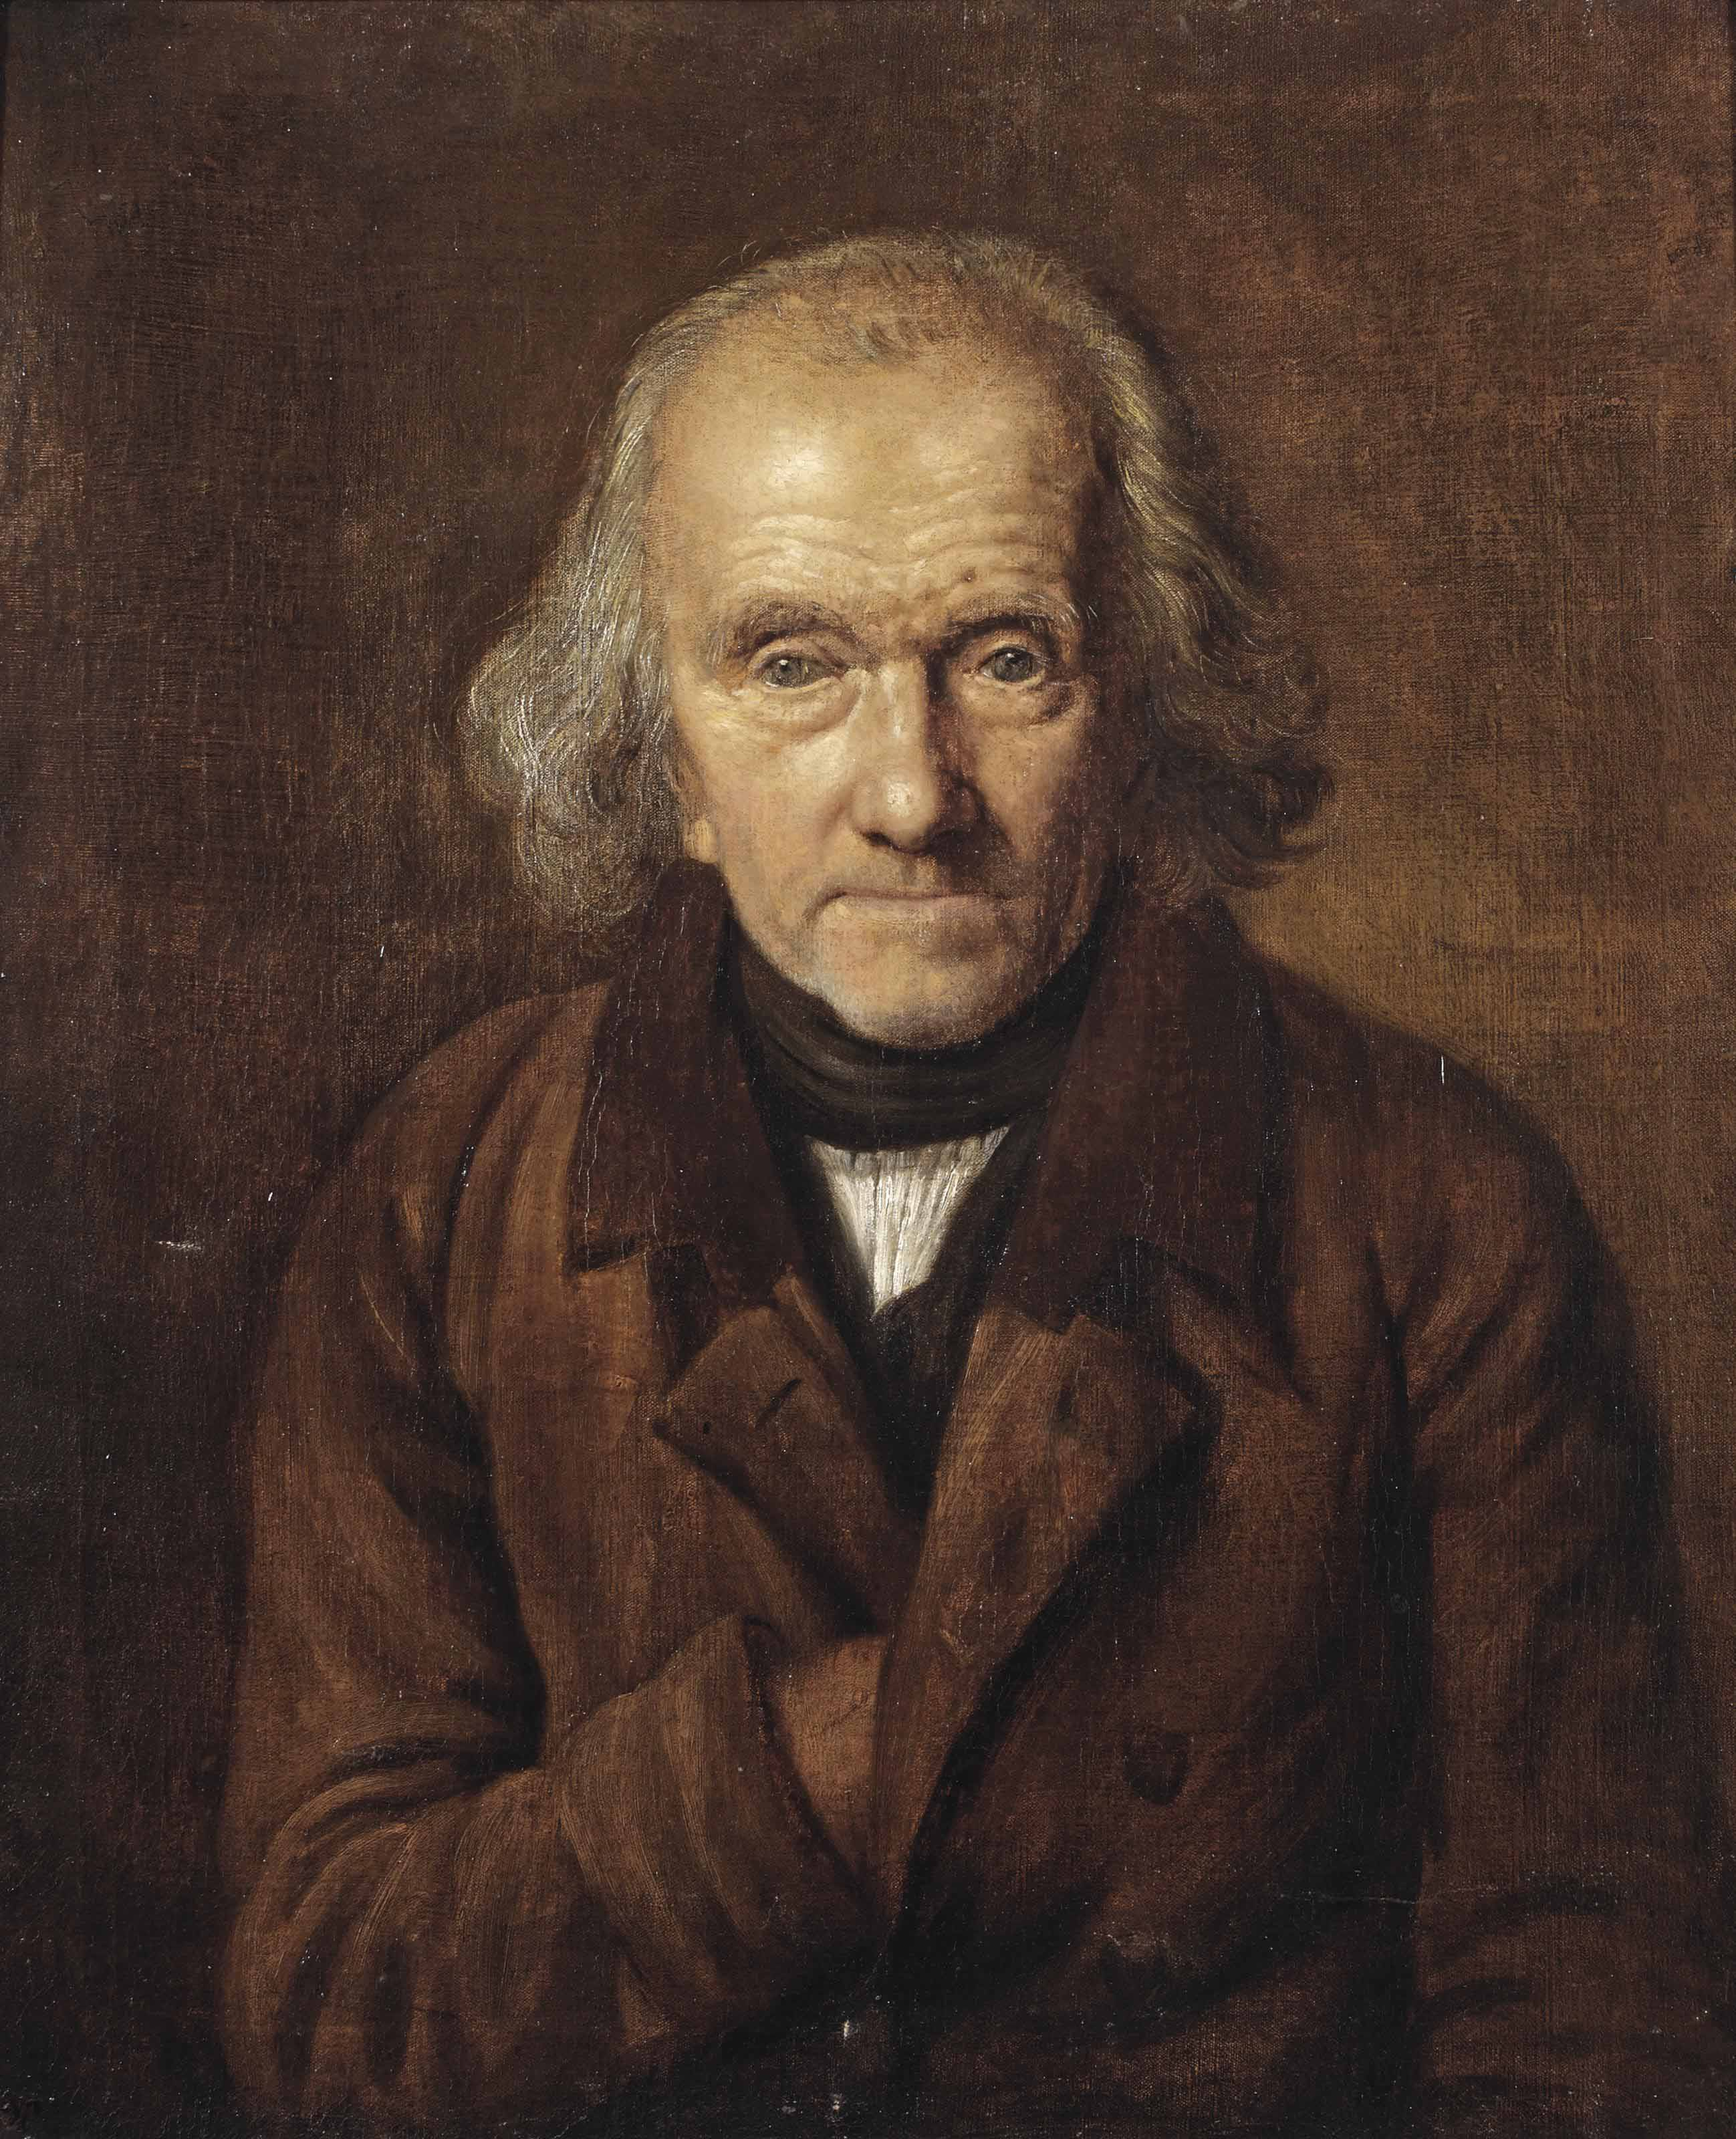 Self-portrait of the artist, half-length, in a brown coat and a white chemise